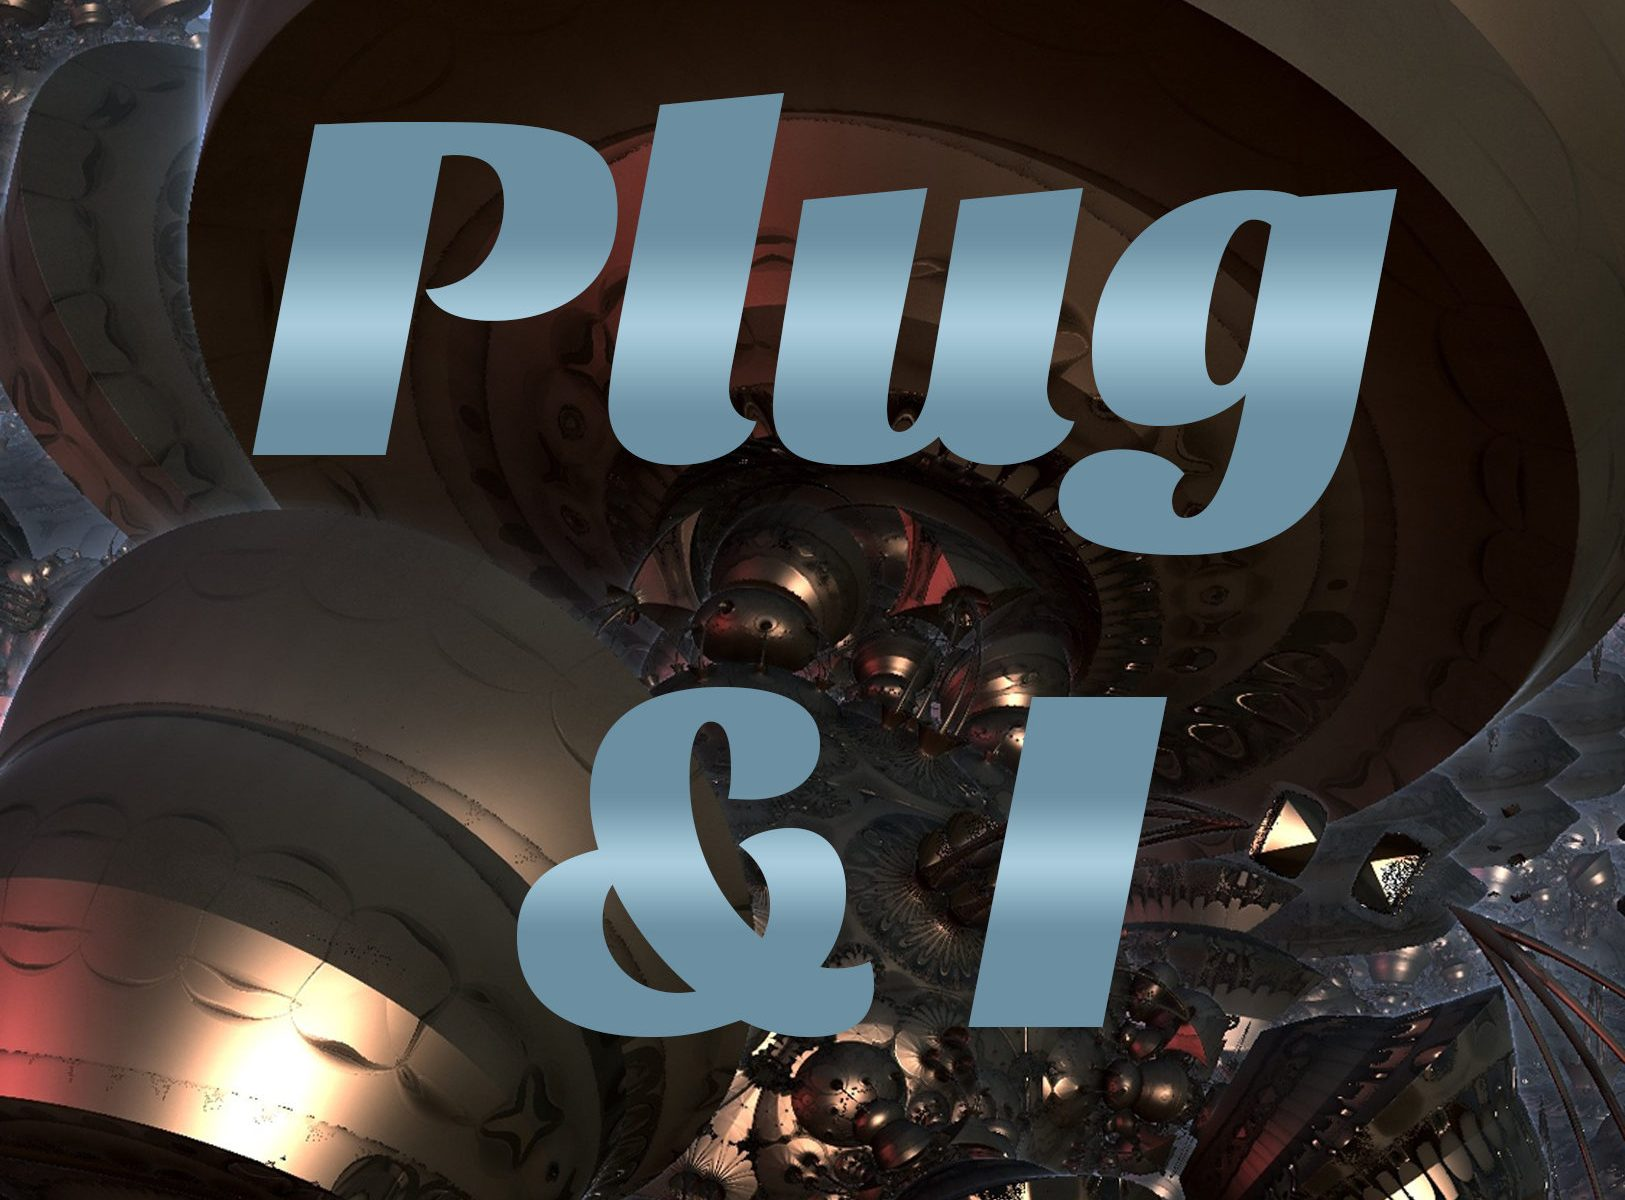 new science fiction Offworlders story -- Plug & I, by T. M. Adair